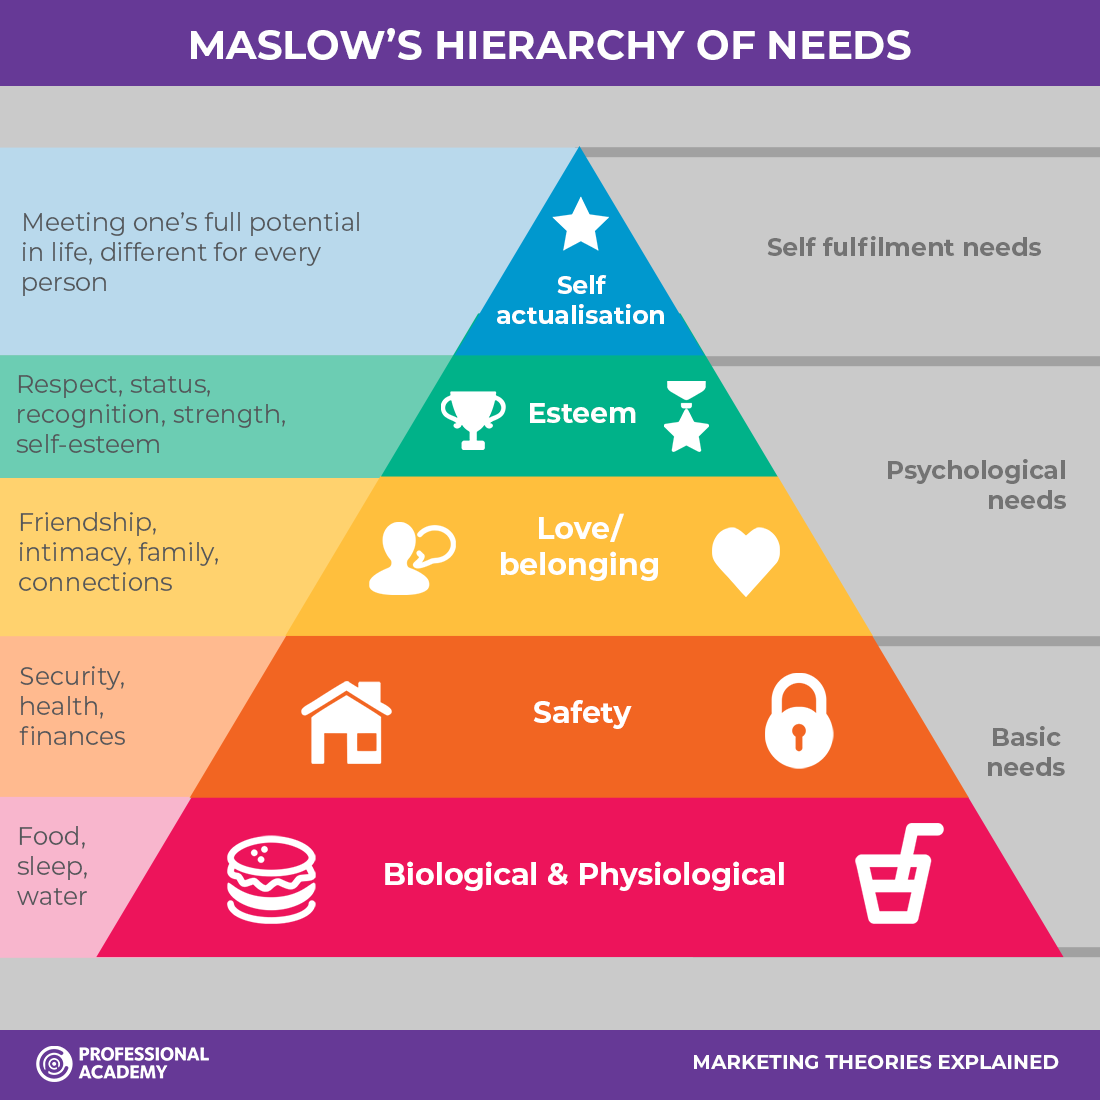 Marketing Theories Explained - Maslow's Hierarchy of Needs